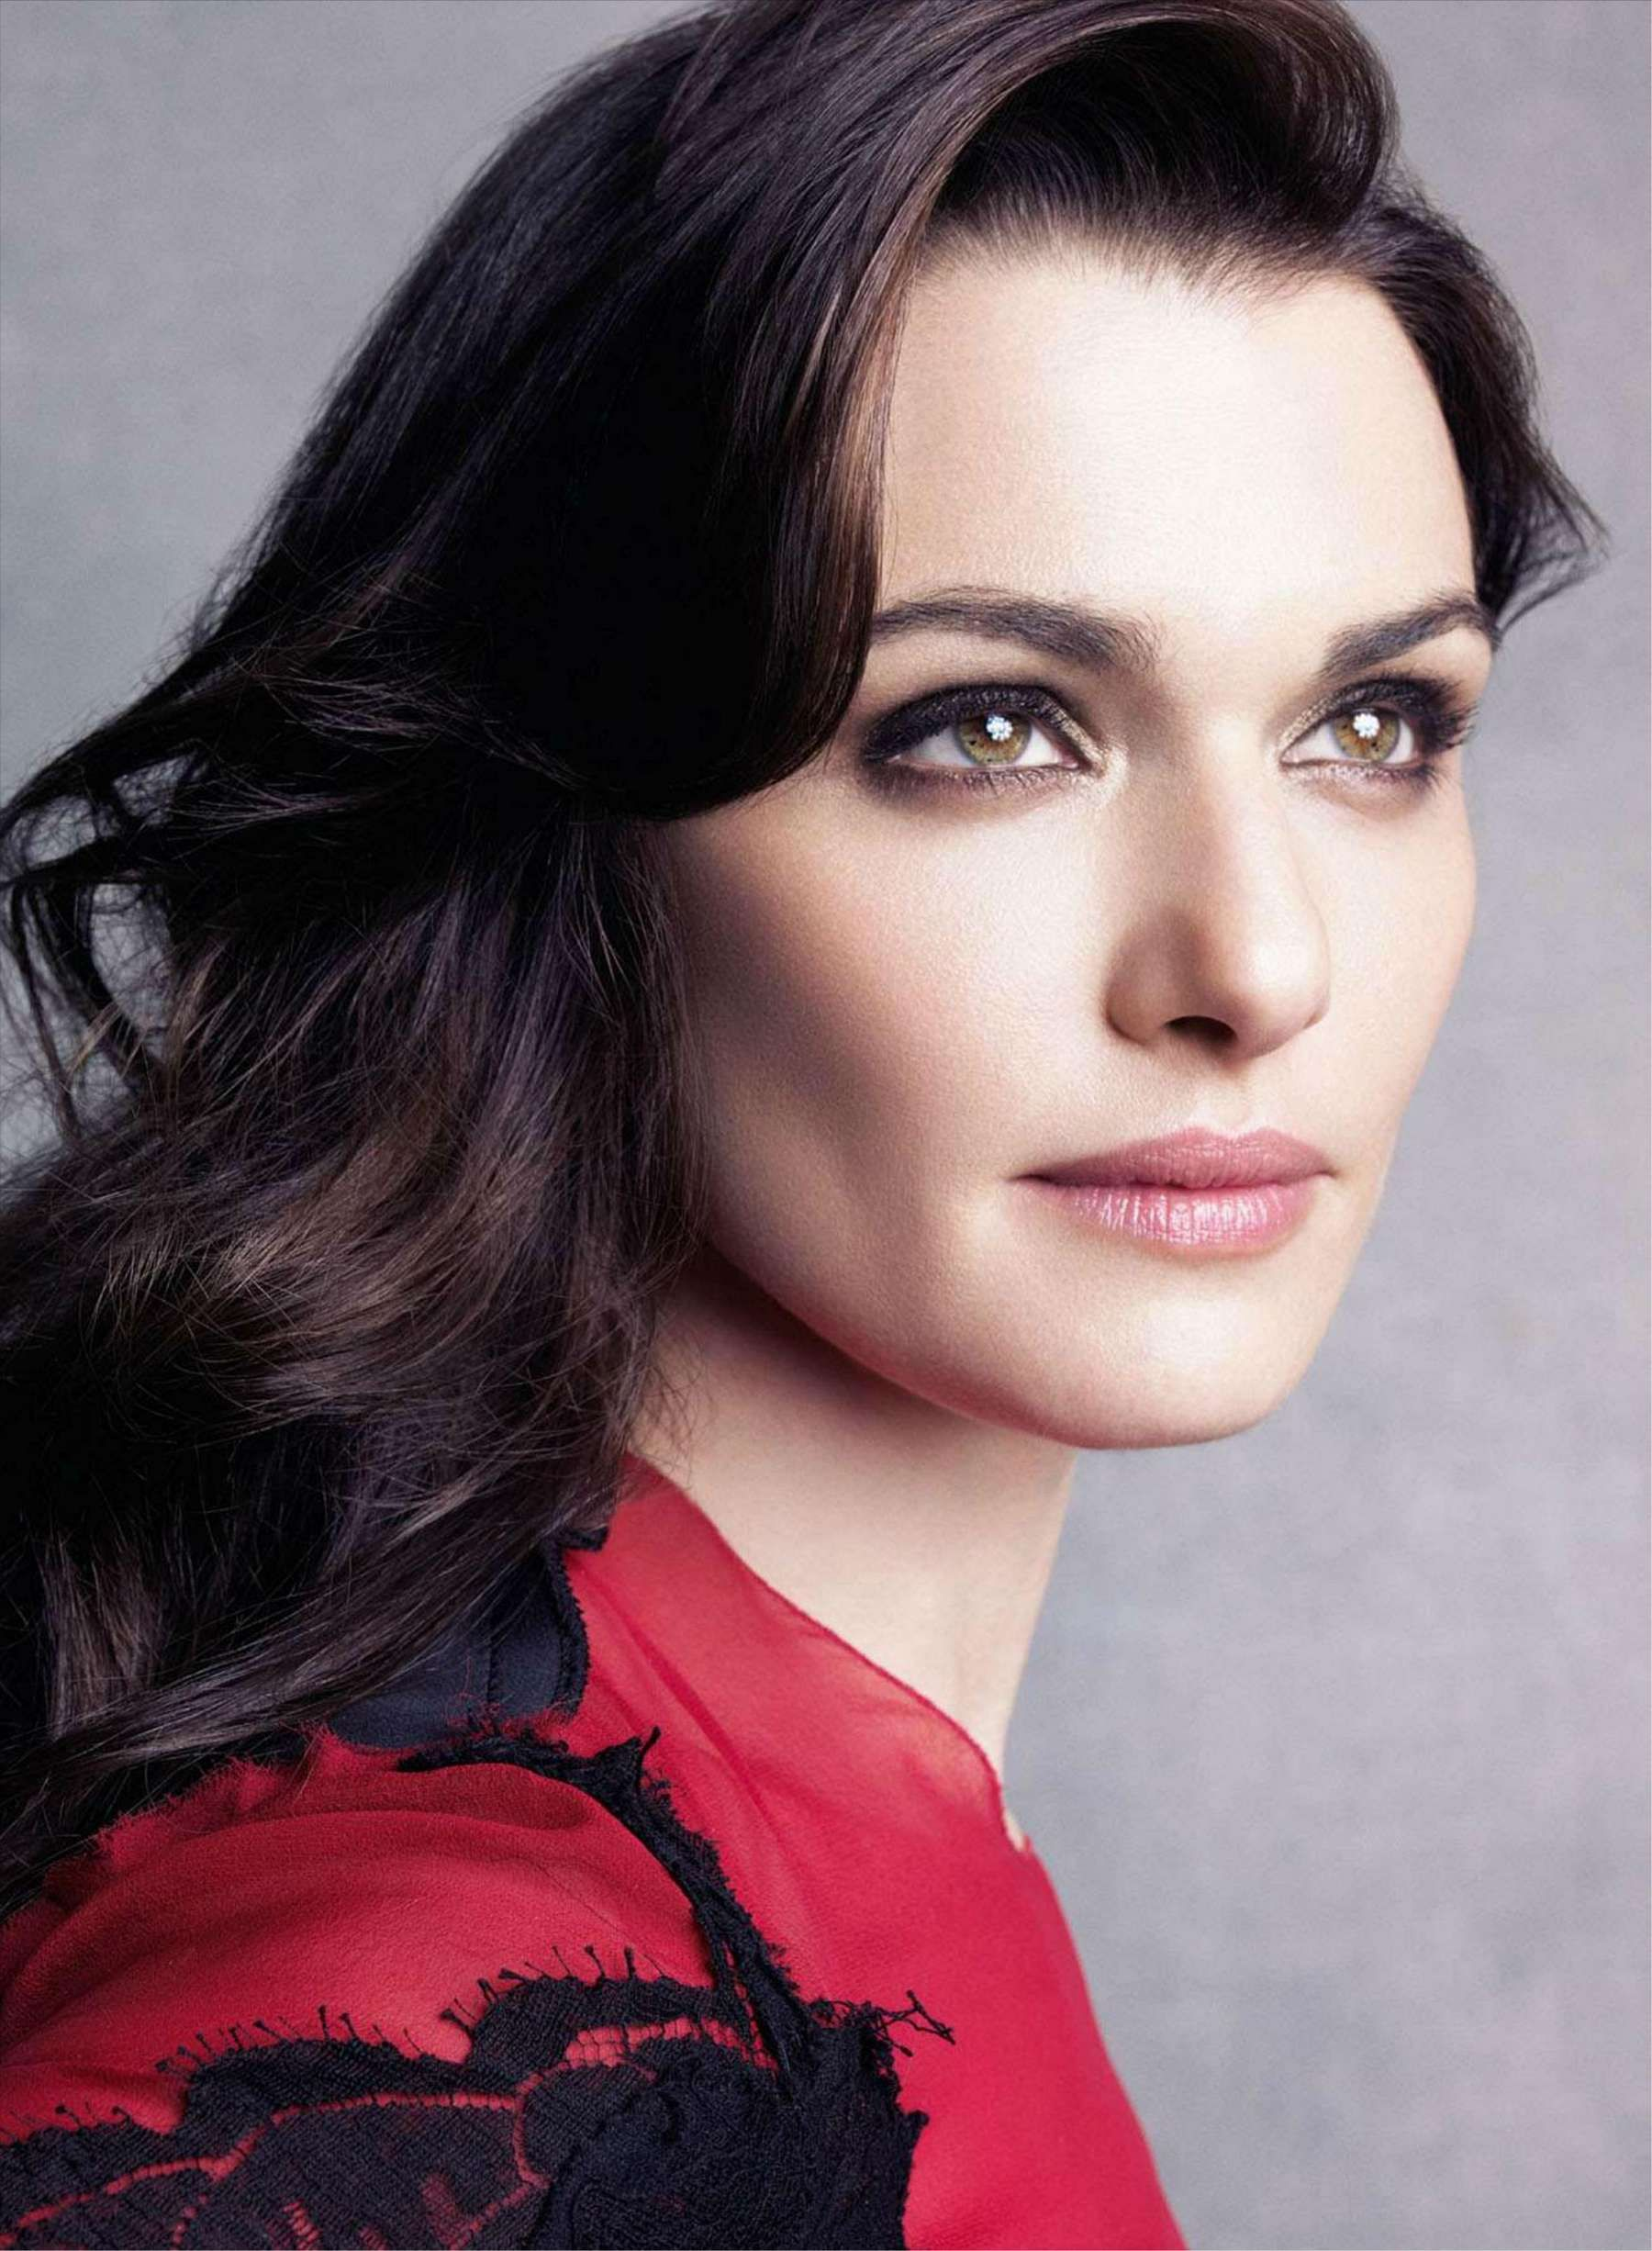 Forum on this topic: Jesse Draper, rachel-weisz-born-1970-naturalized-american-citizen/